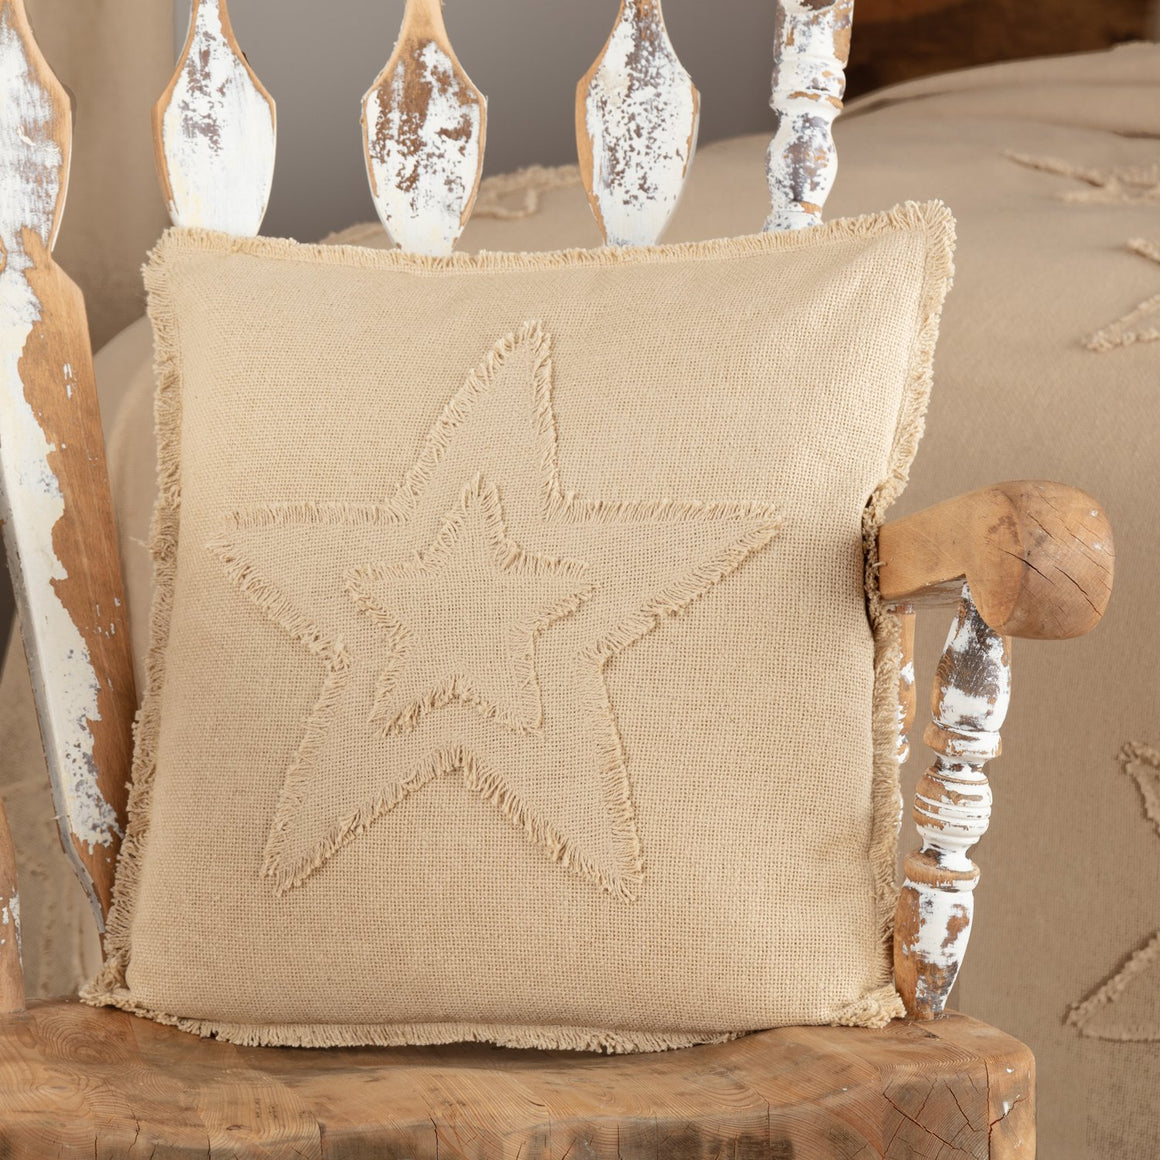 Burlap Star Pillow 18x18